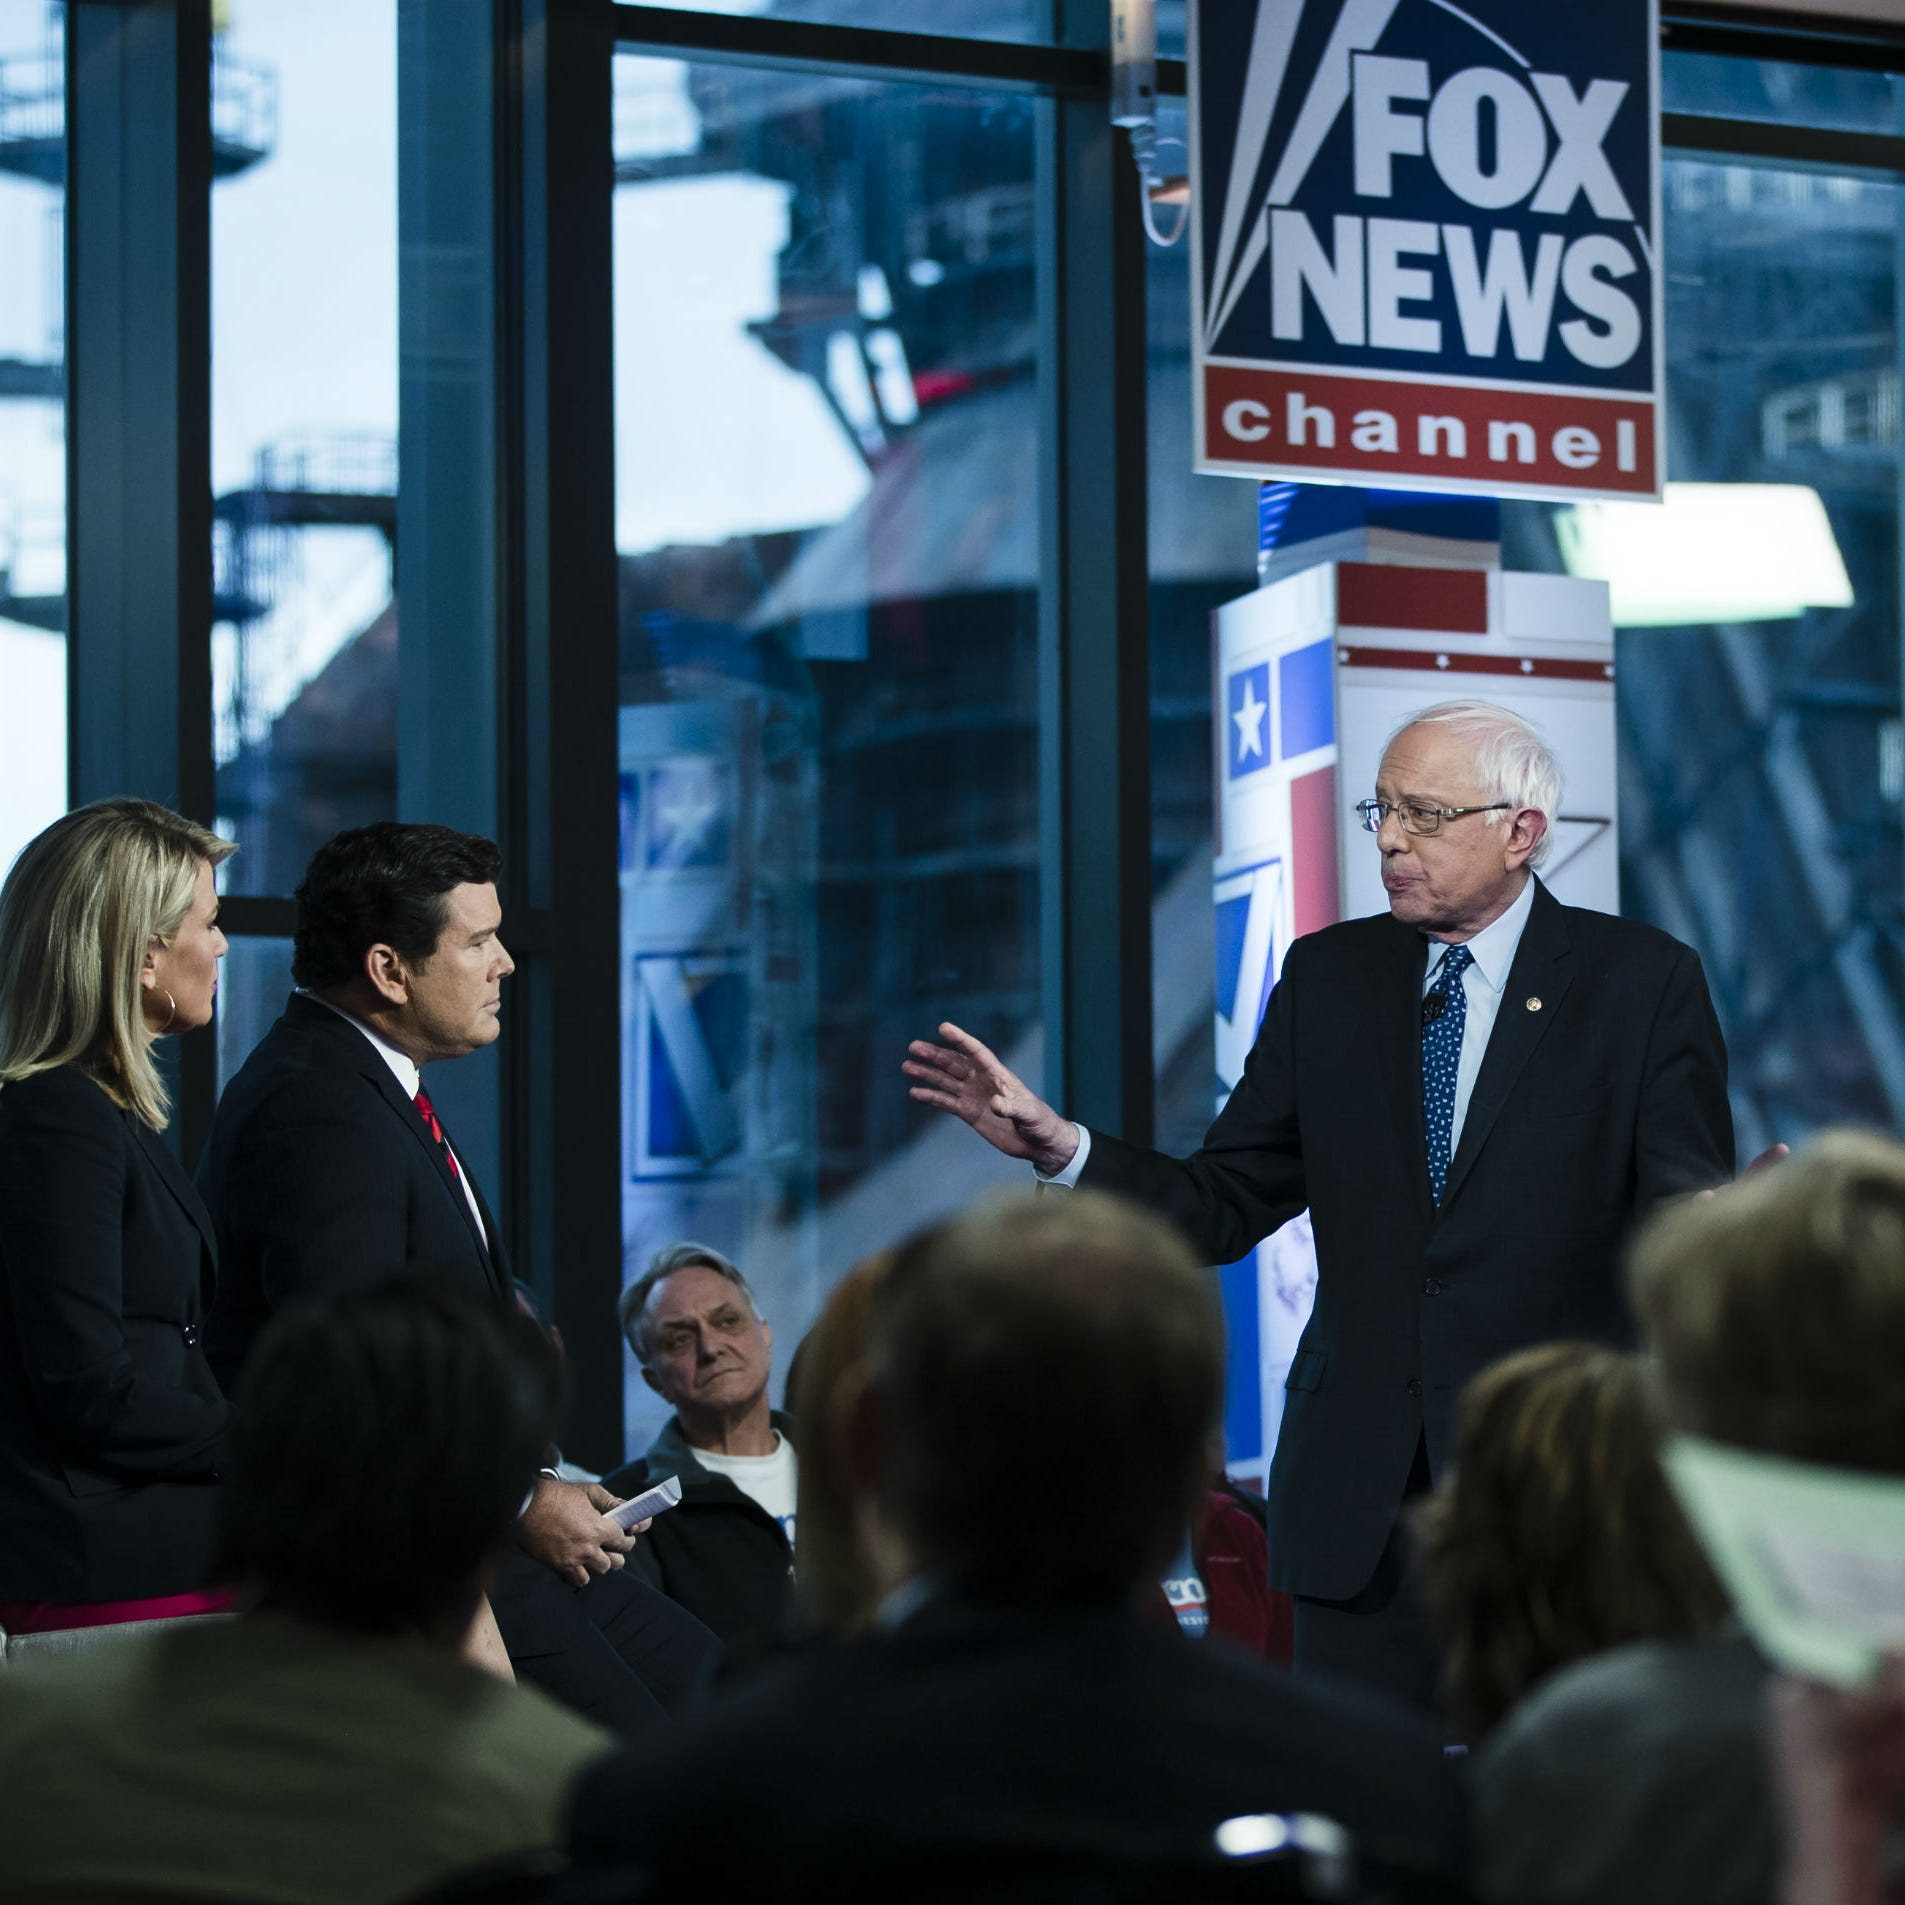 VT Insights: 5 takeaways from Bernie Sanders' Fox News town hall